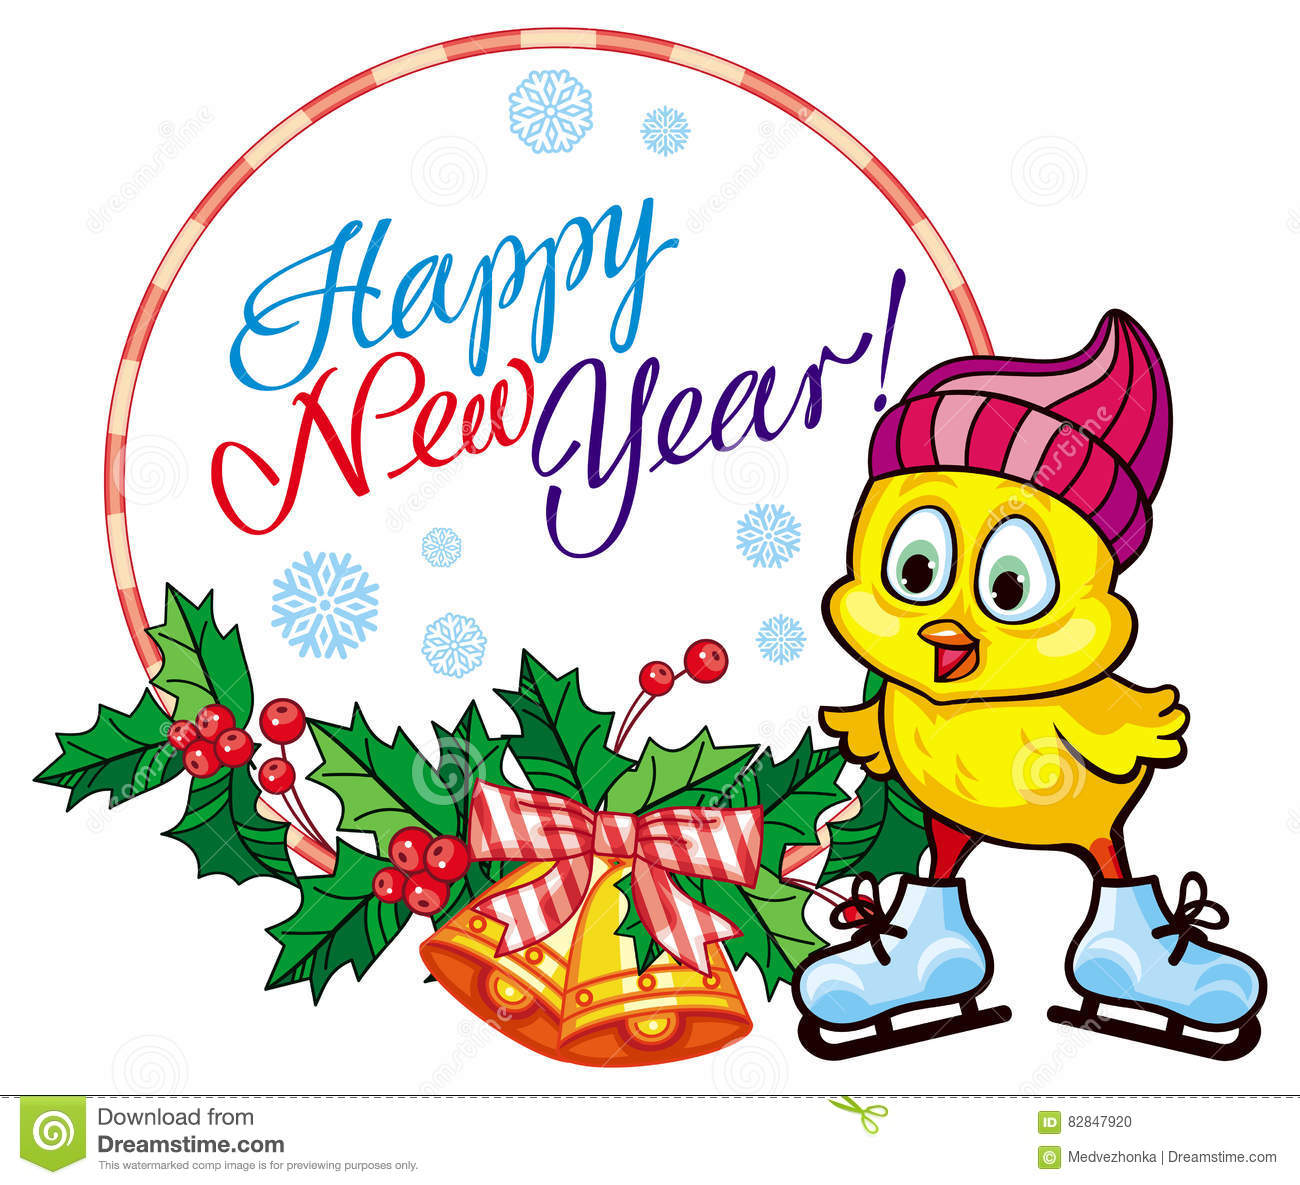 holiday label with cute chicken and greeting texthappy new year copy space raster clip art